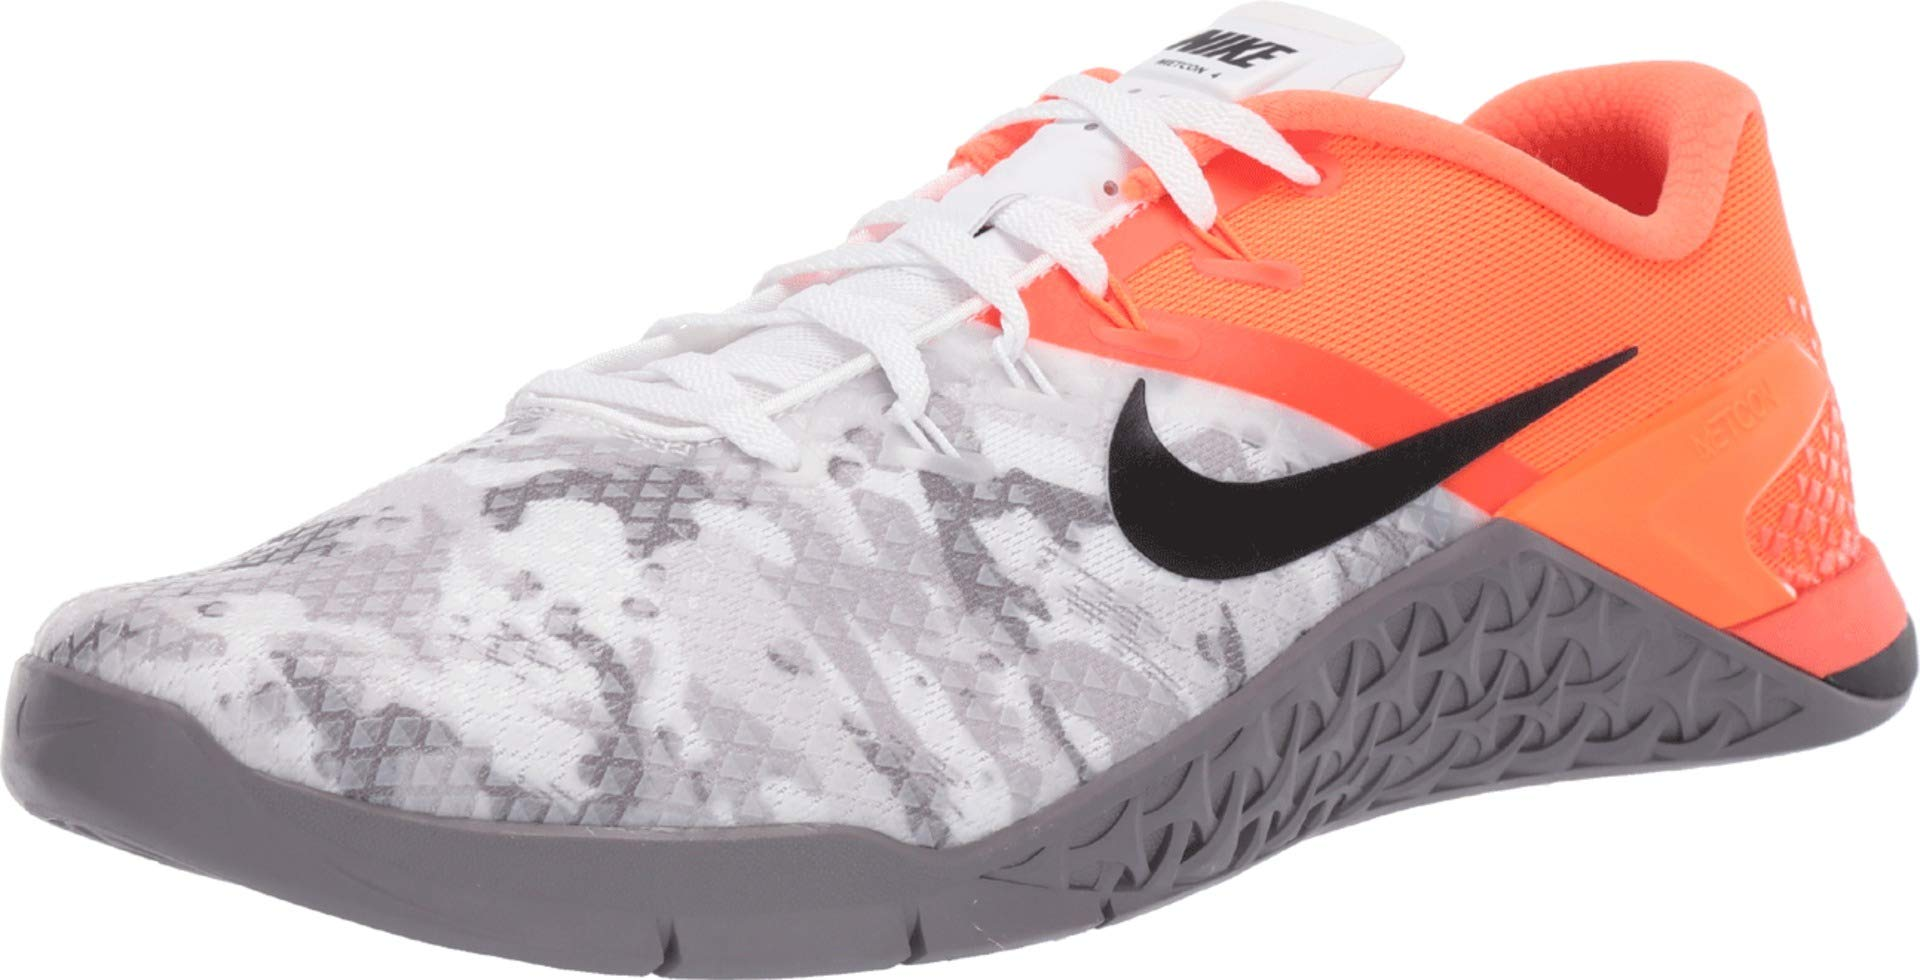 Nike Metcon 4 XD Men's Training Shoe Hyper Crimson/Black-Gunsmoke-White 7.5